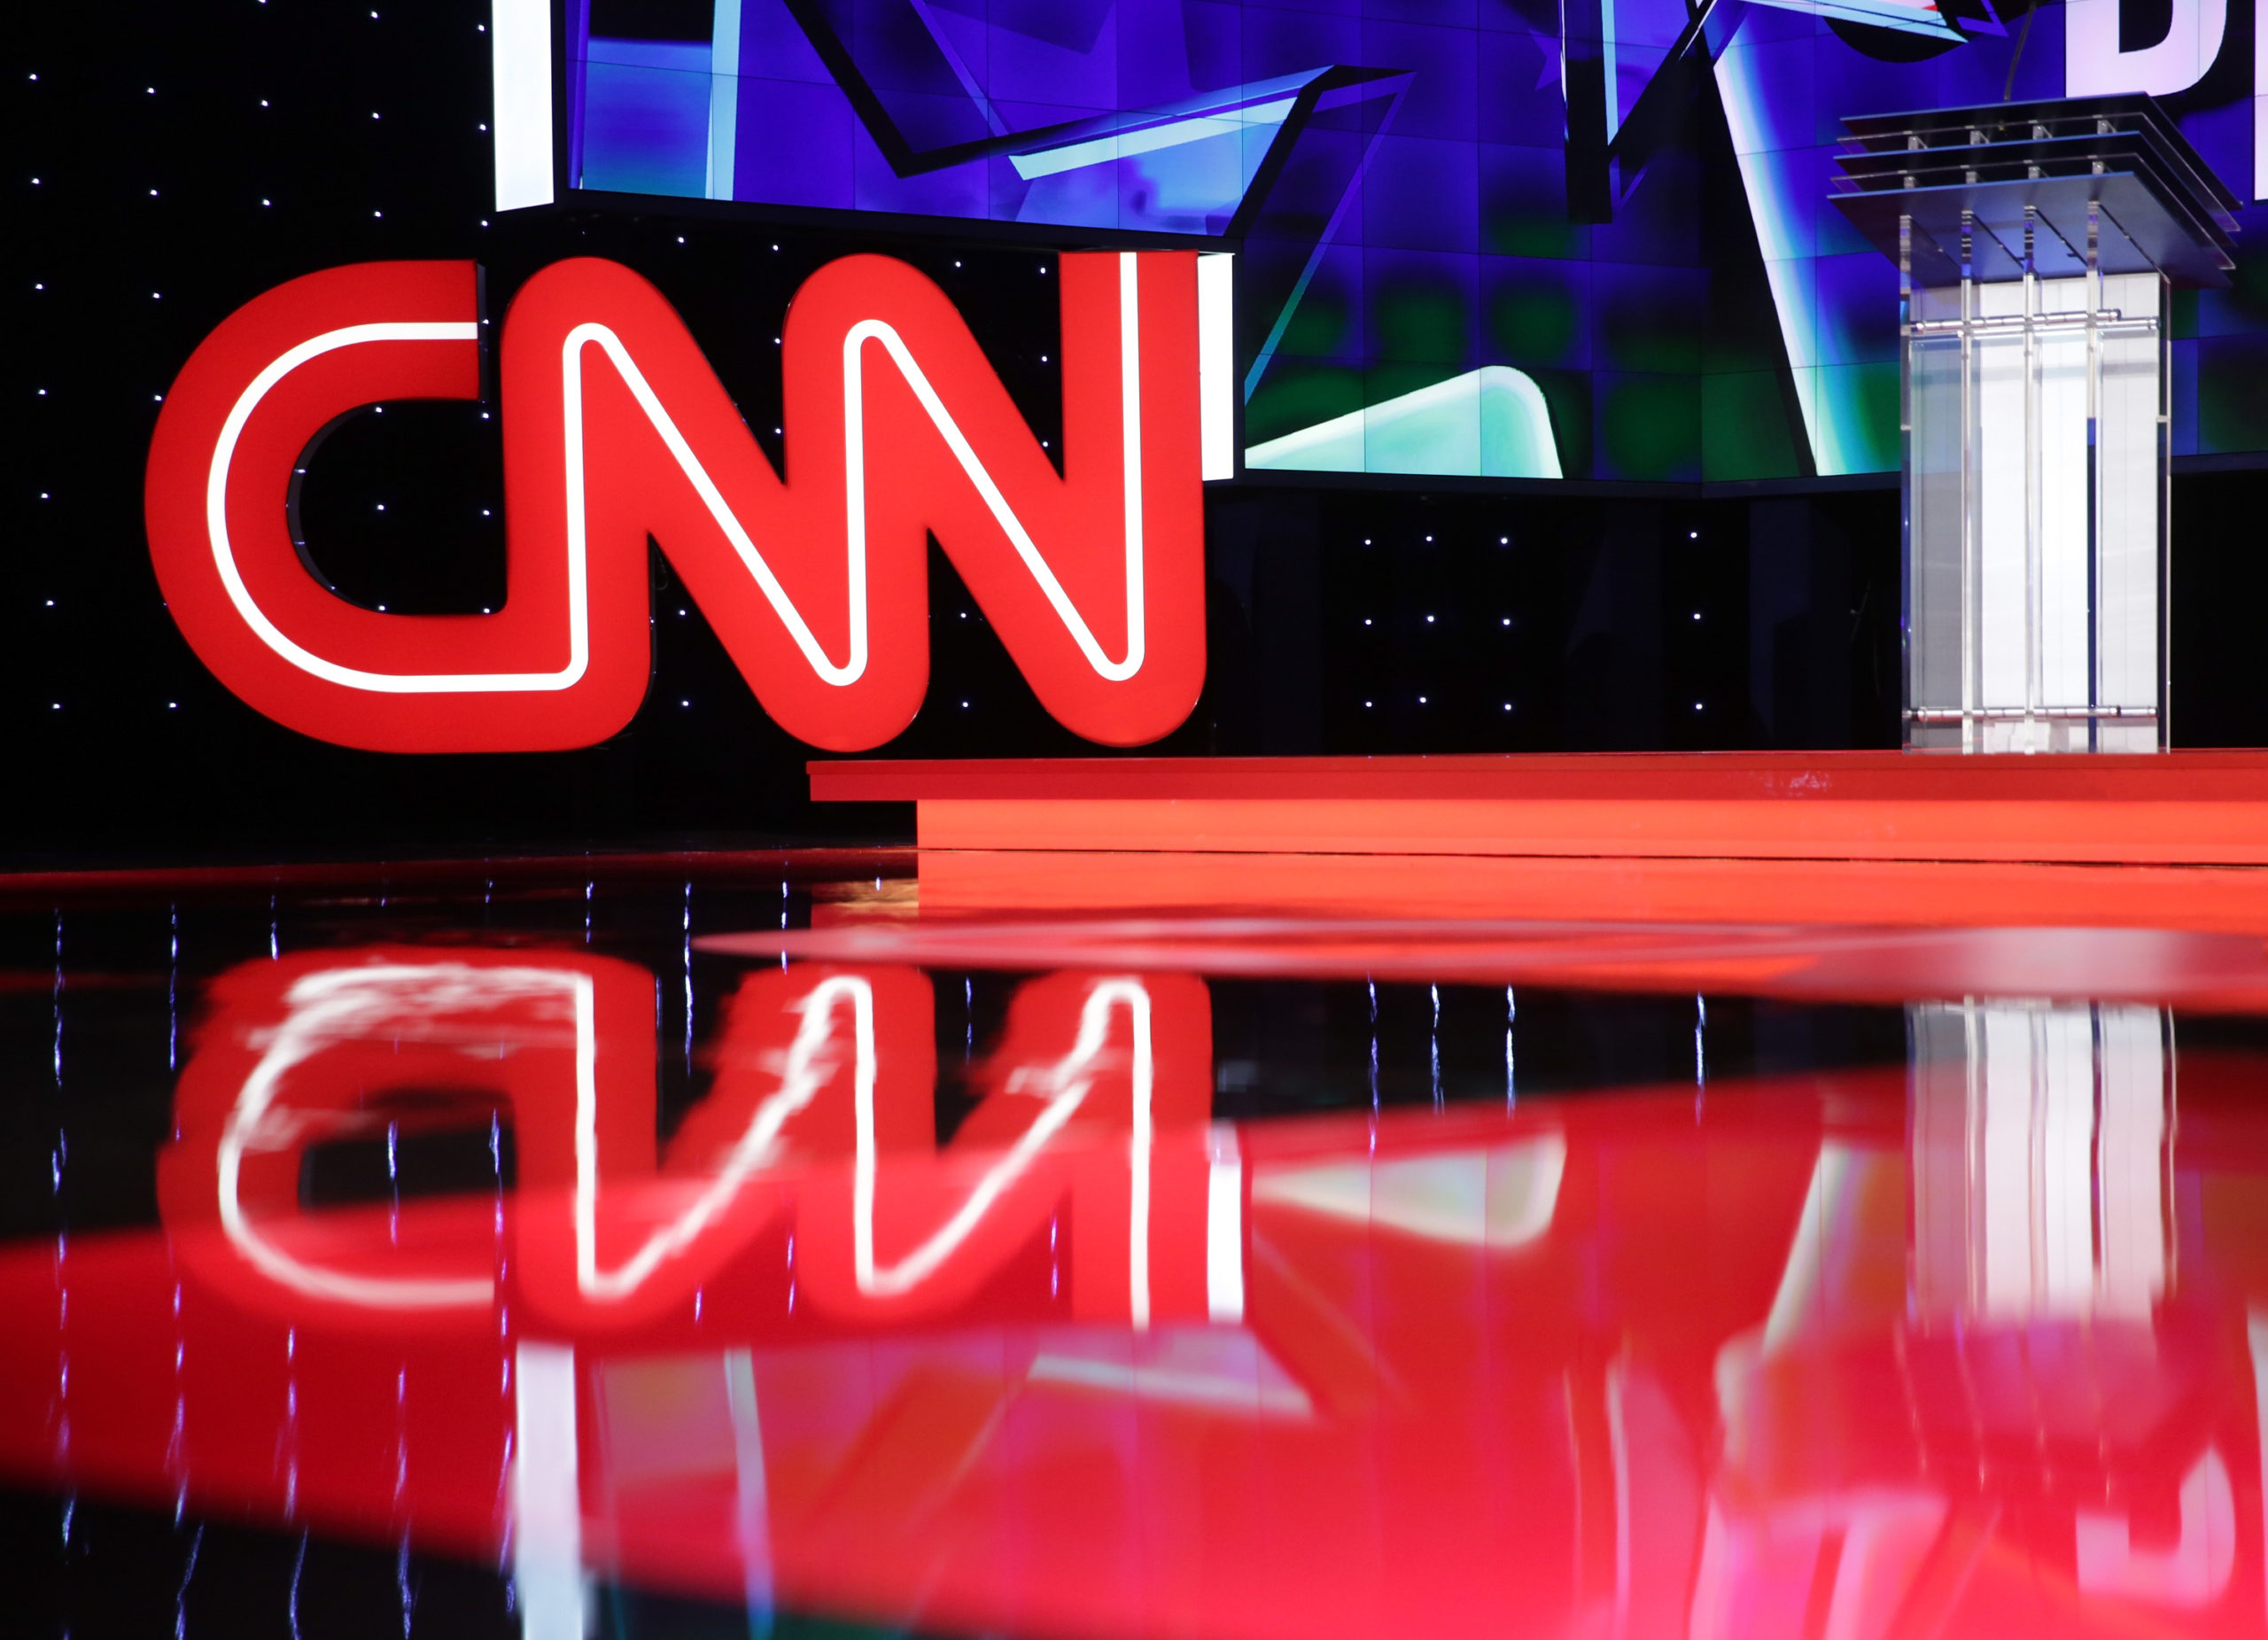 CNN Business Launches Internal Investigation Into Treatment of Women, Workplace Culture: Report